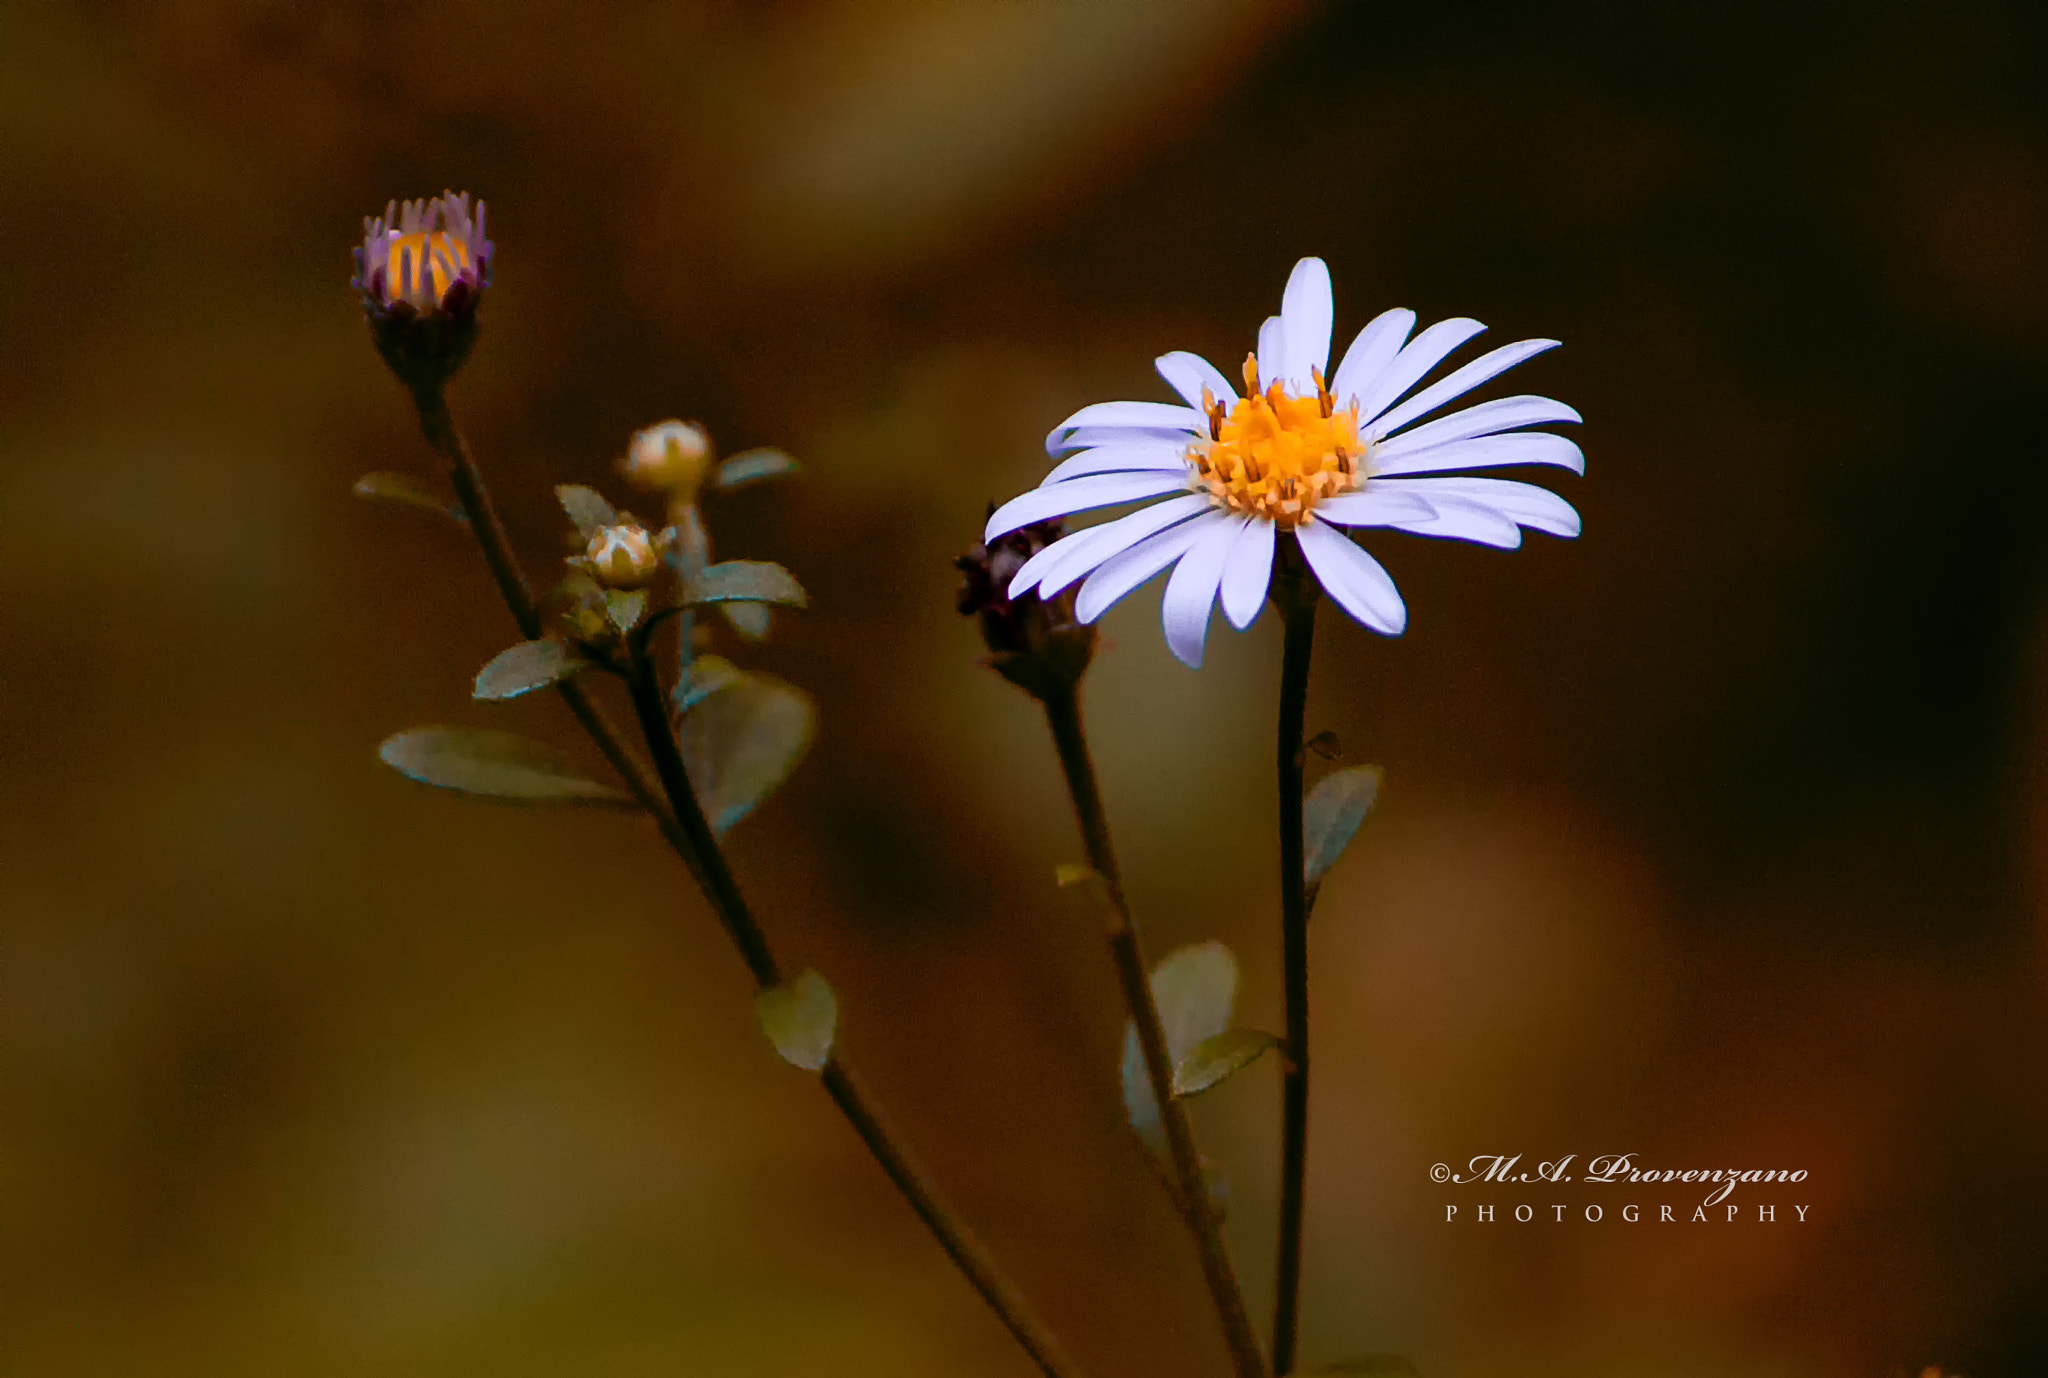 Photograph Daisy by Michael Provenzano on 500px